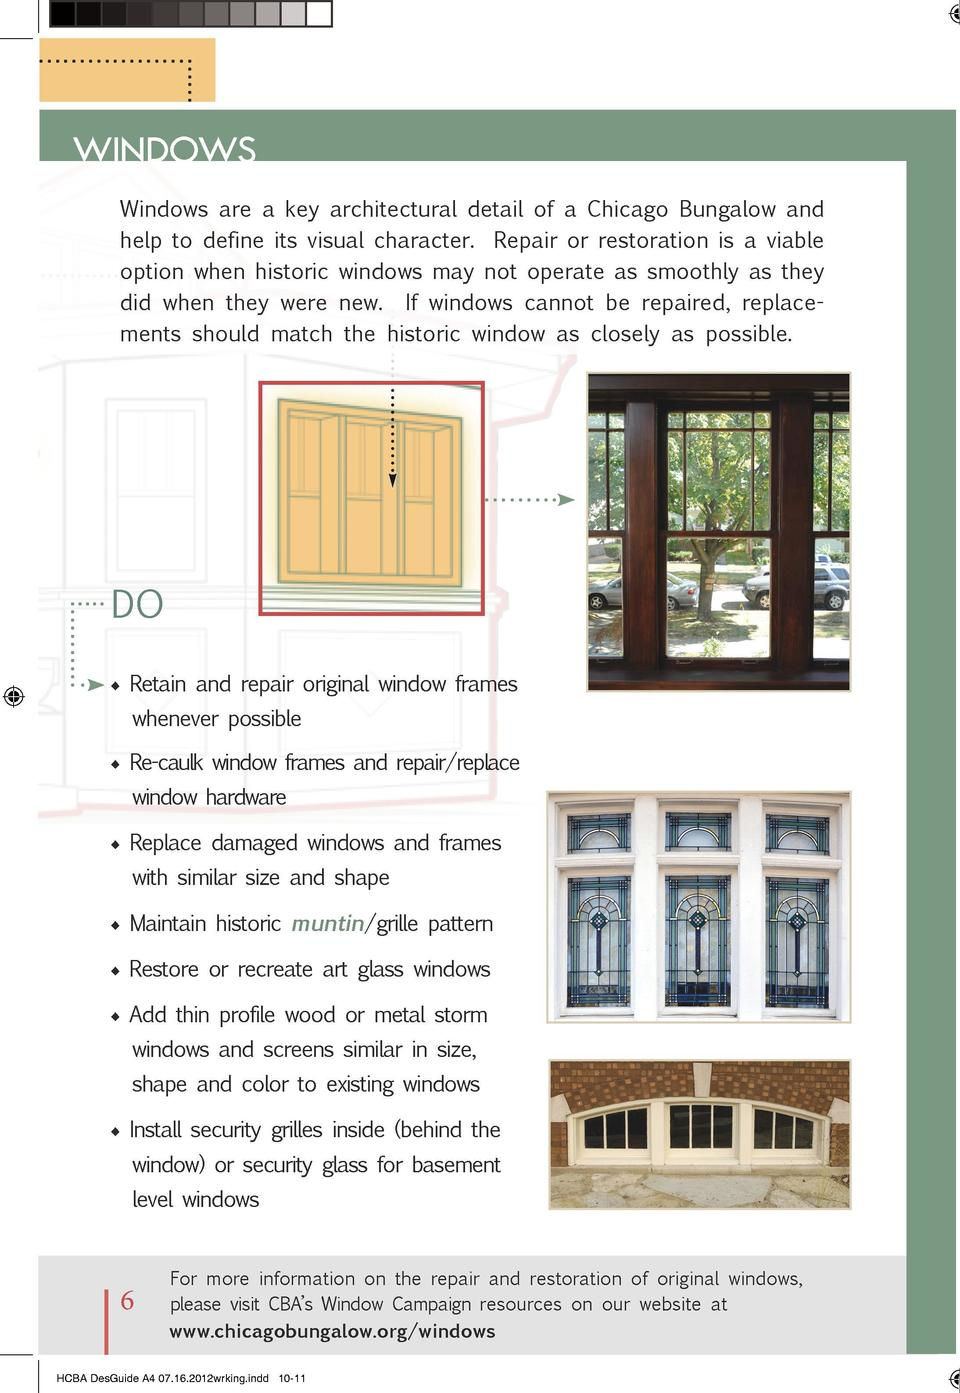 WINDOWS Windows are a key architectural detail of a Chicago Bungalow and help to define its visual character. Repair or re...